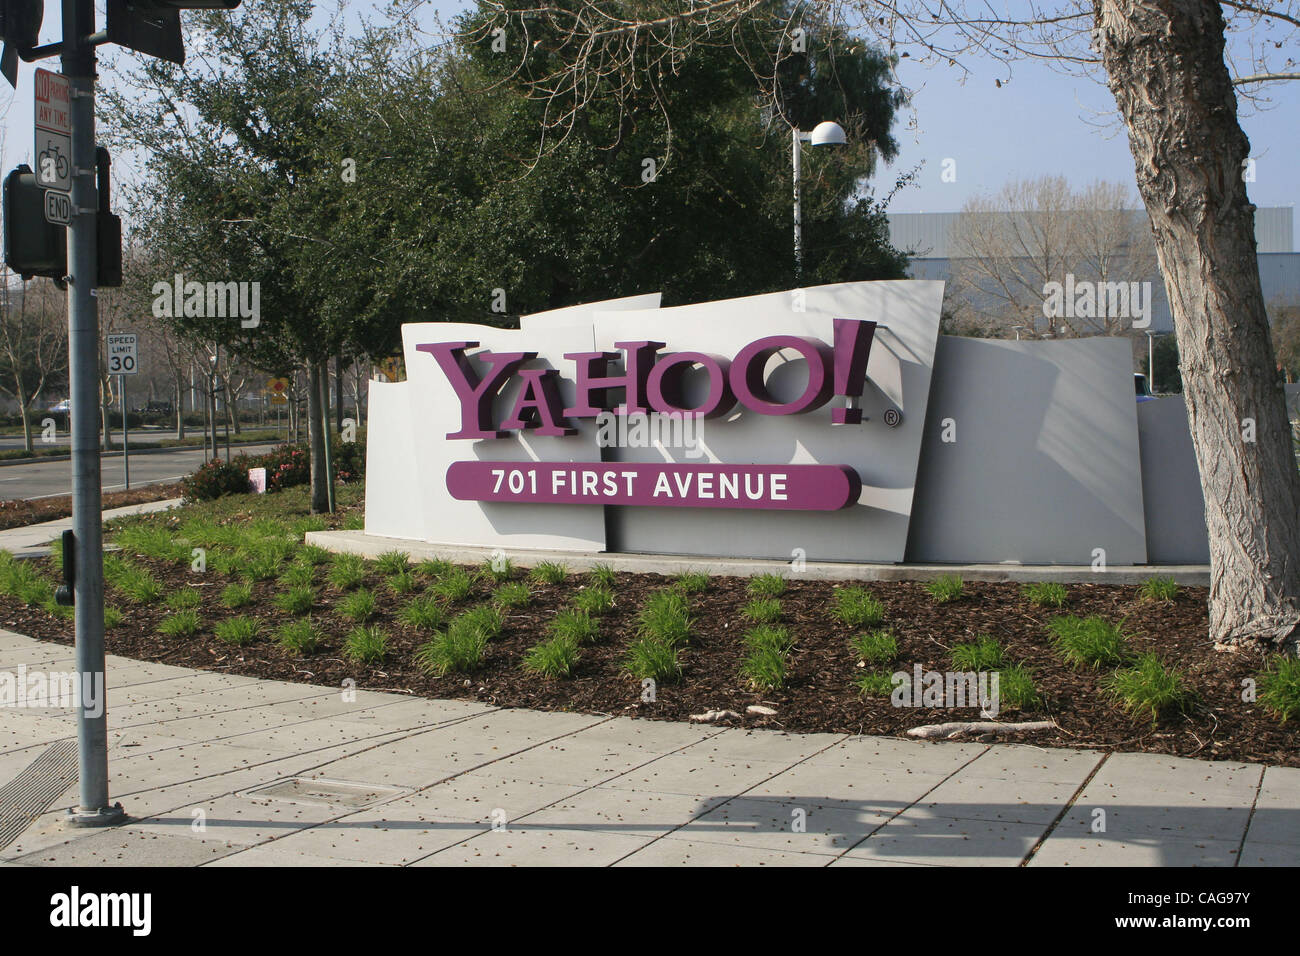 Yahoo los angeles